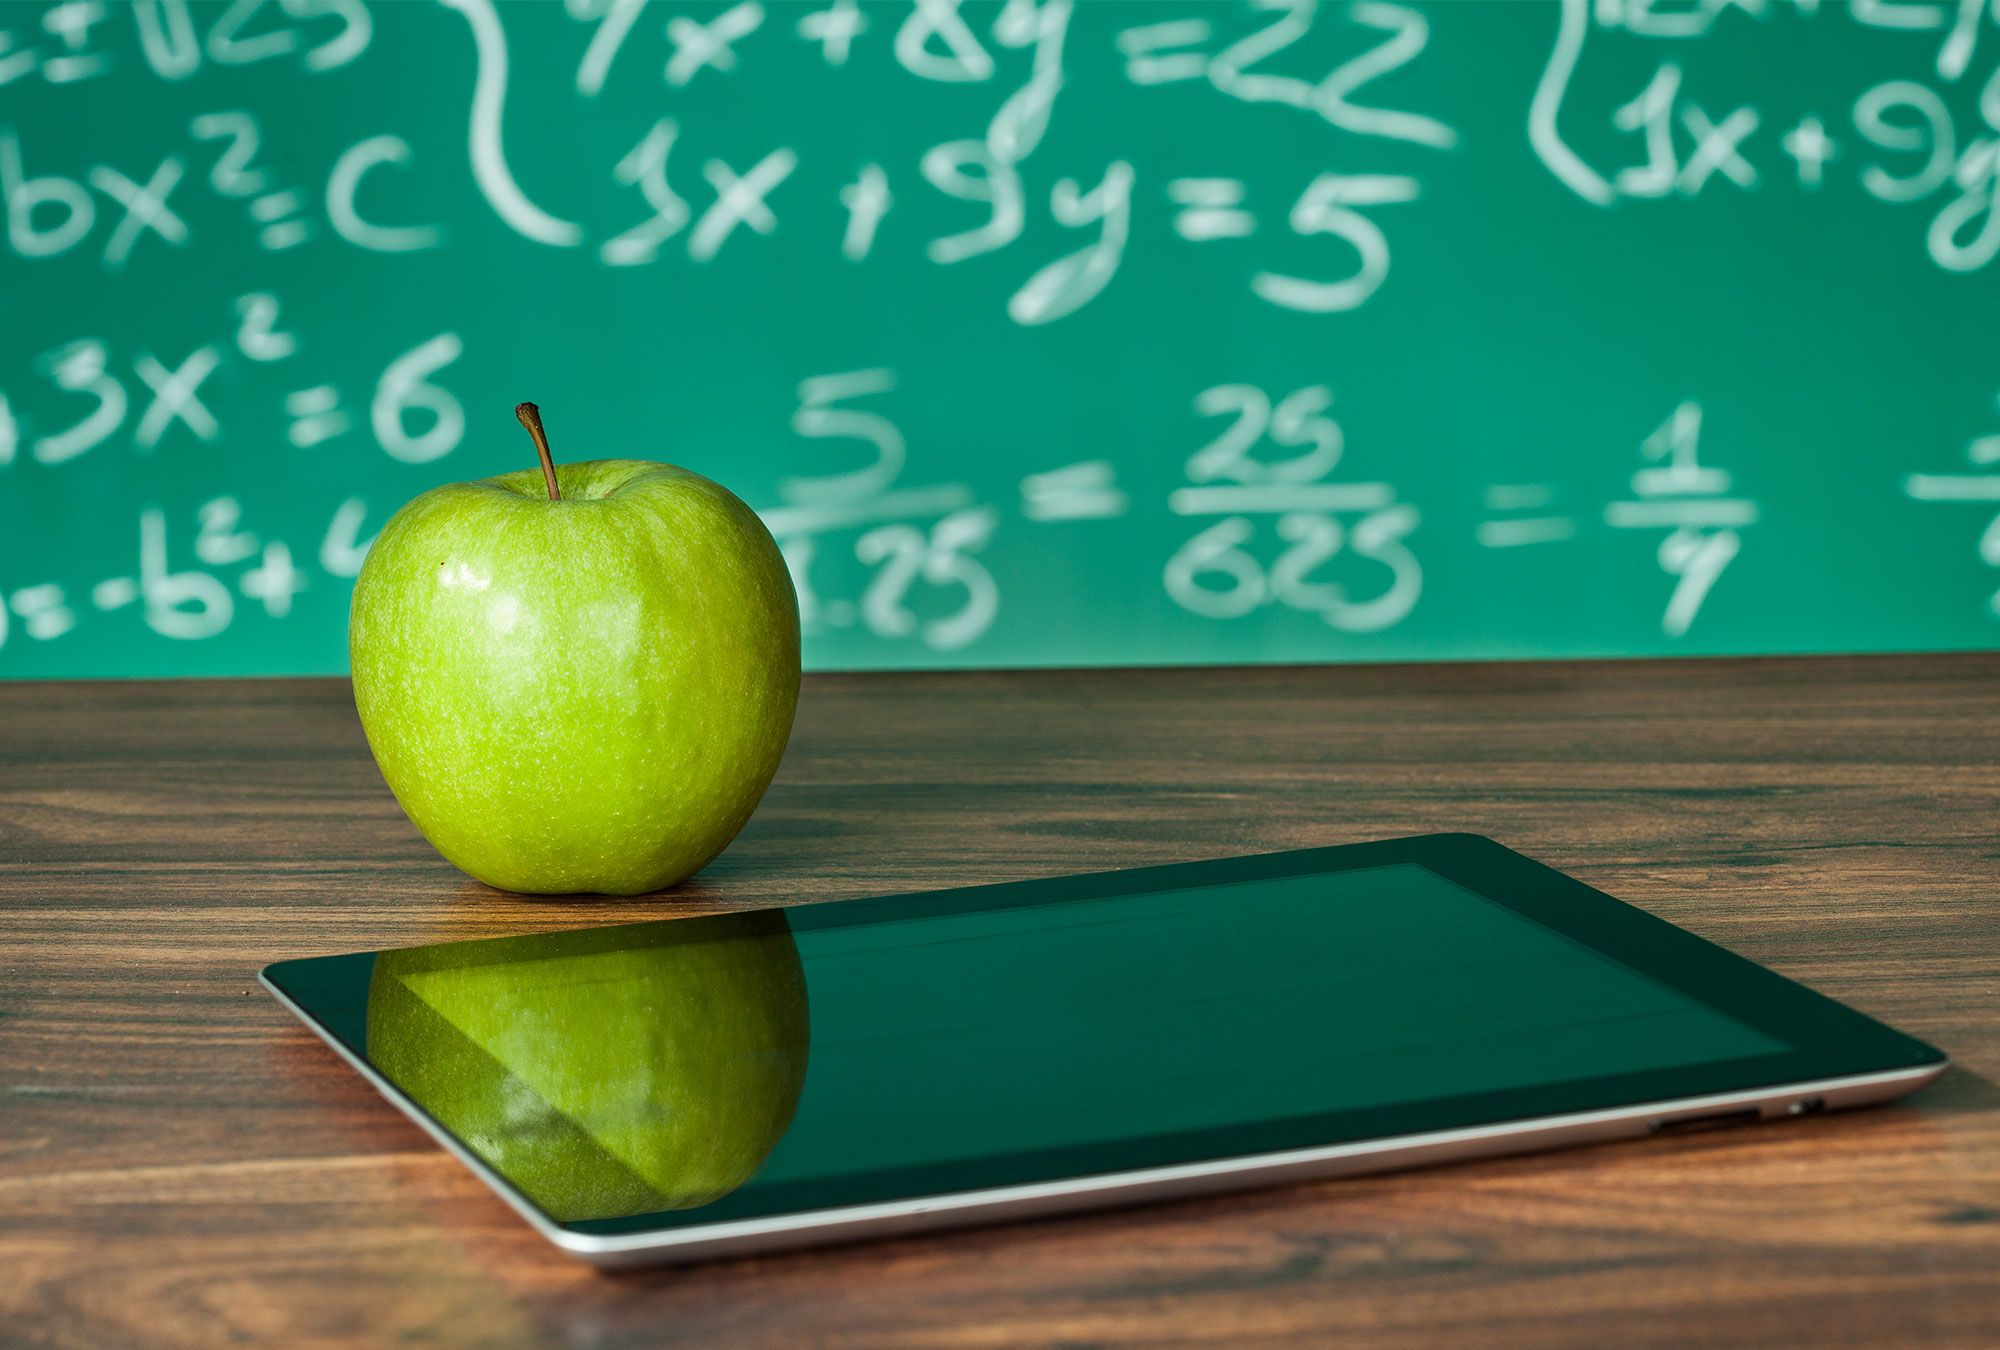 iPad and an apple in front of a chalkboard